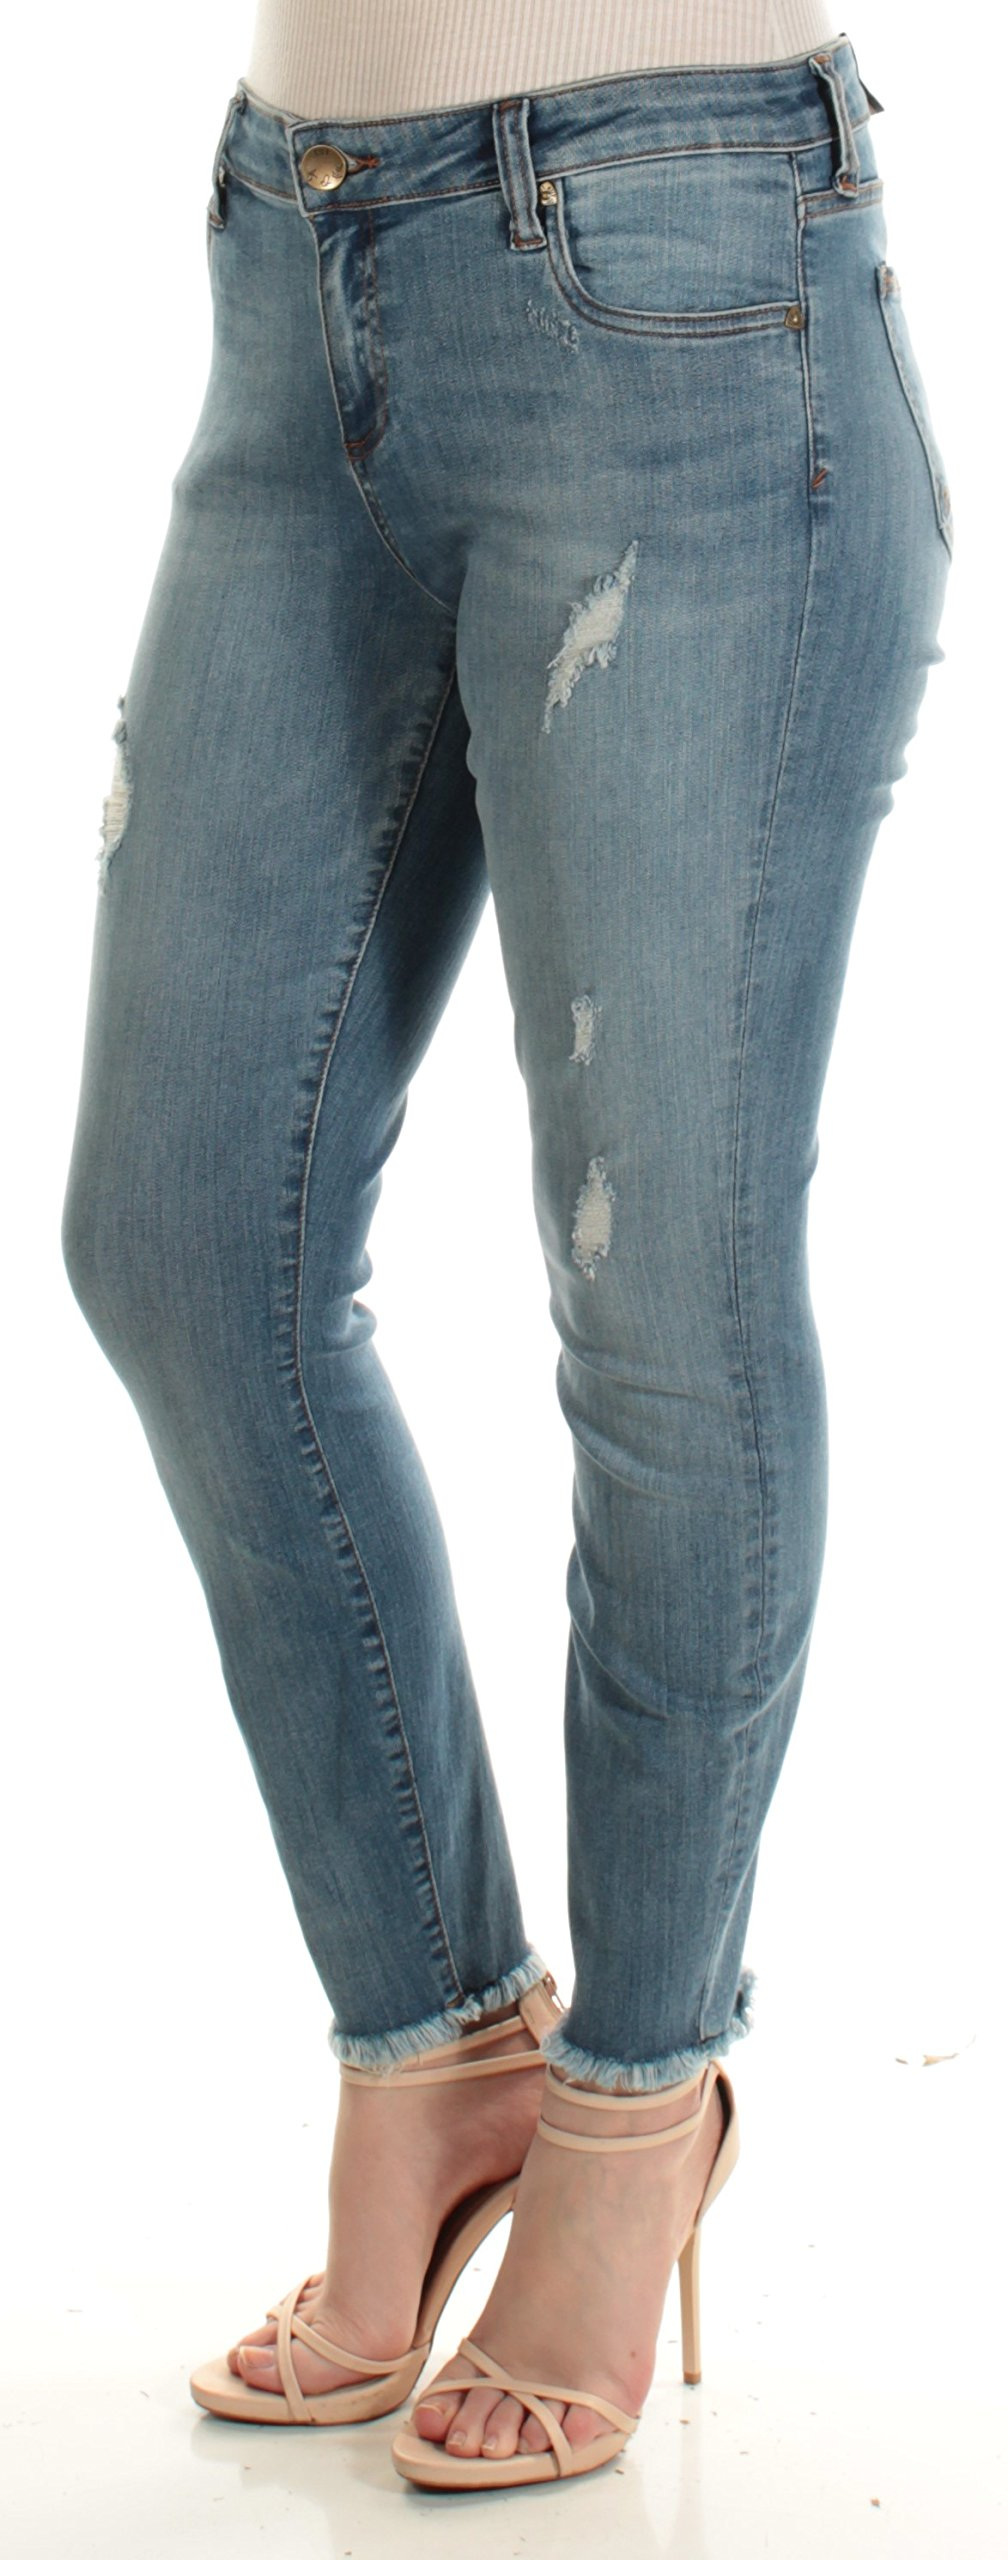 KUT from the Kloth Womens Connie Denim Distressed Skinny Jeans Blue 10